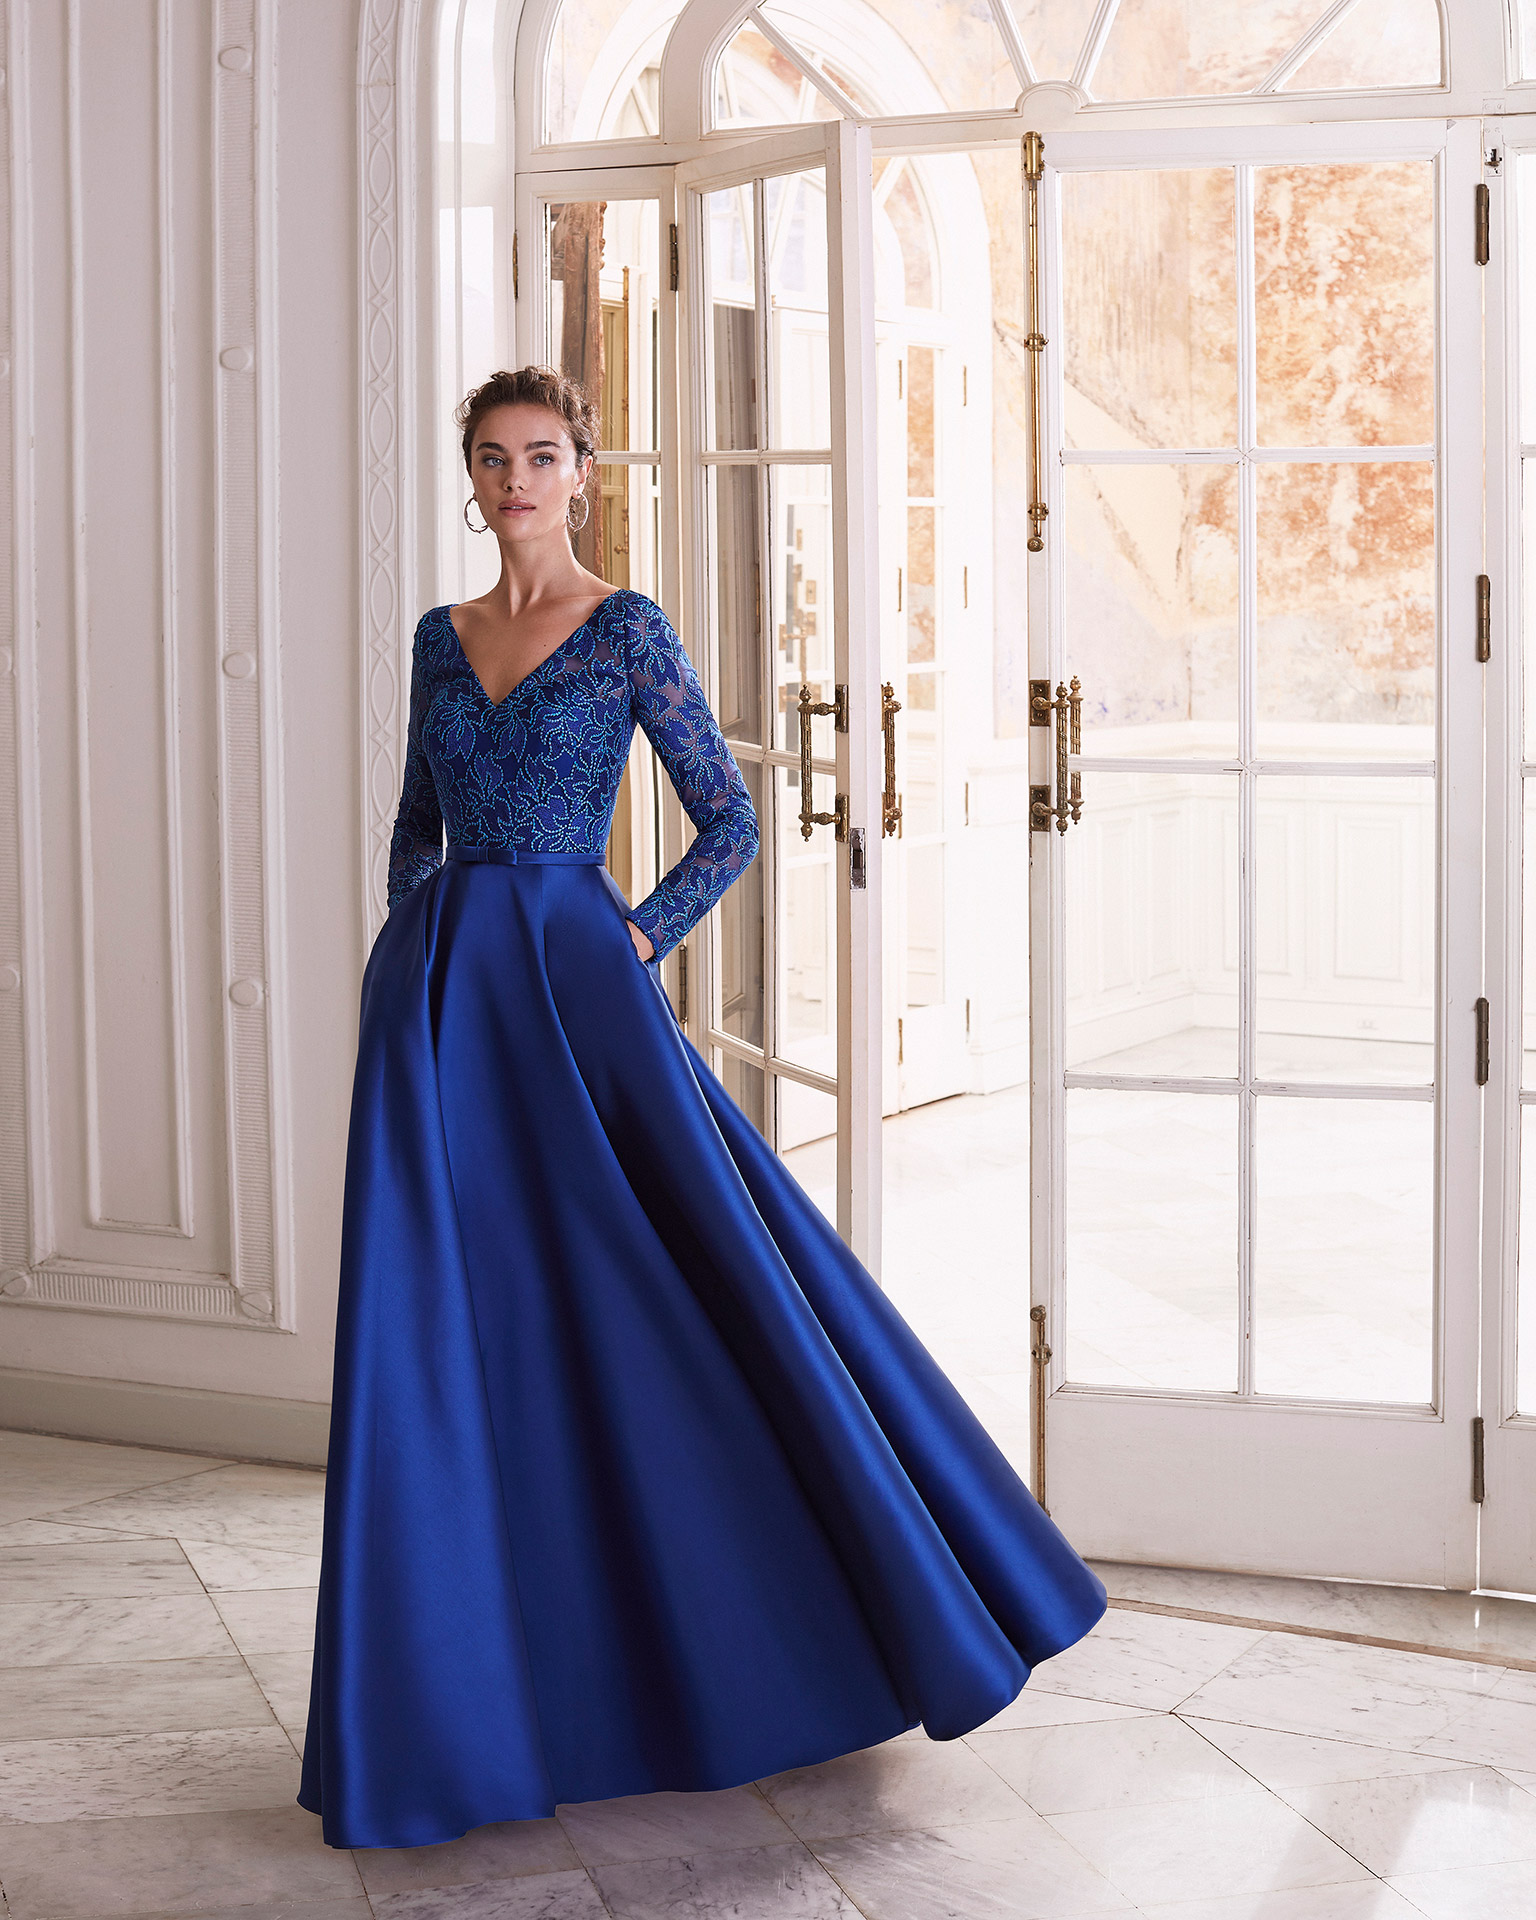 Cocktail dress in mikado with lace bodice. With V-neckline and V-back. Long sleeves and thin belt with bow in centre of dress. 2021 MARFIL BARCELONA Collection.